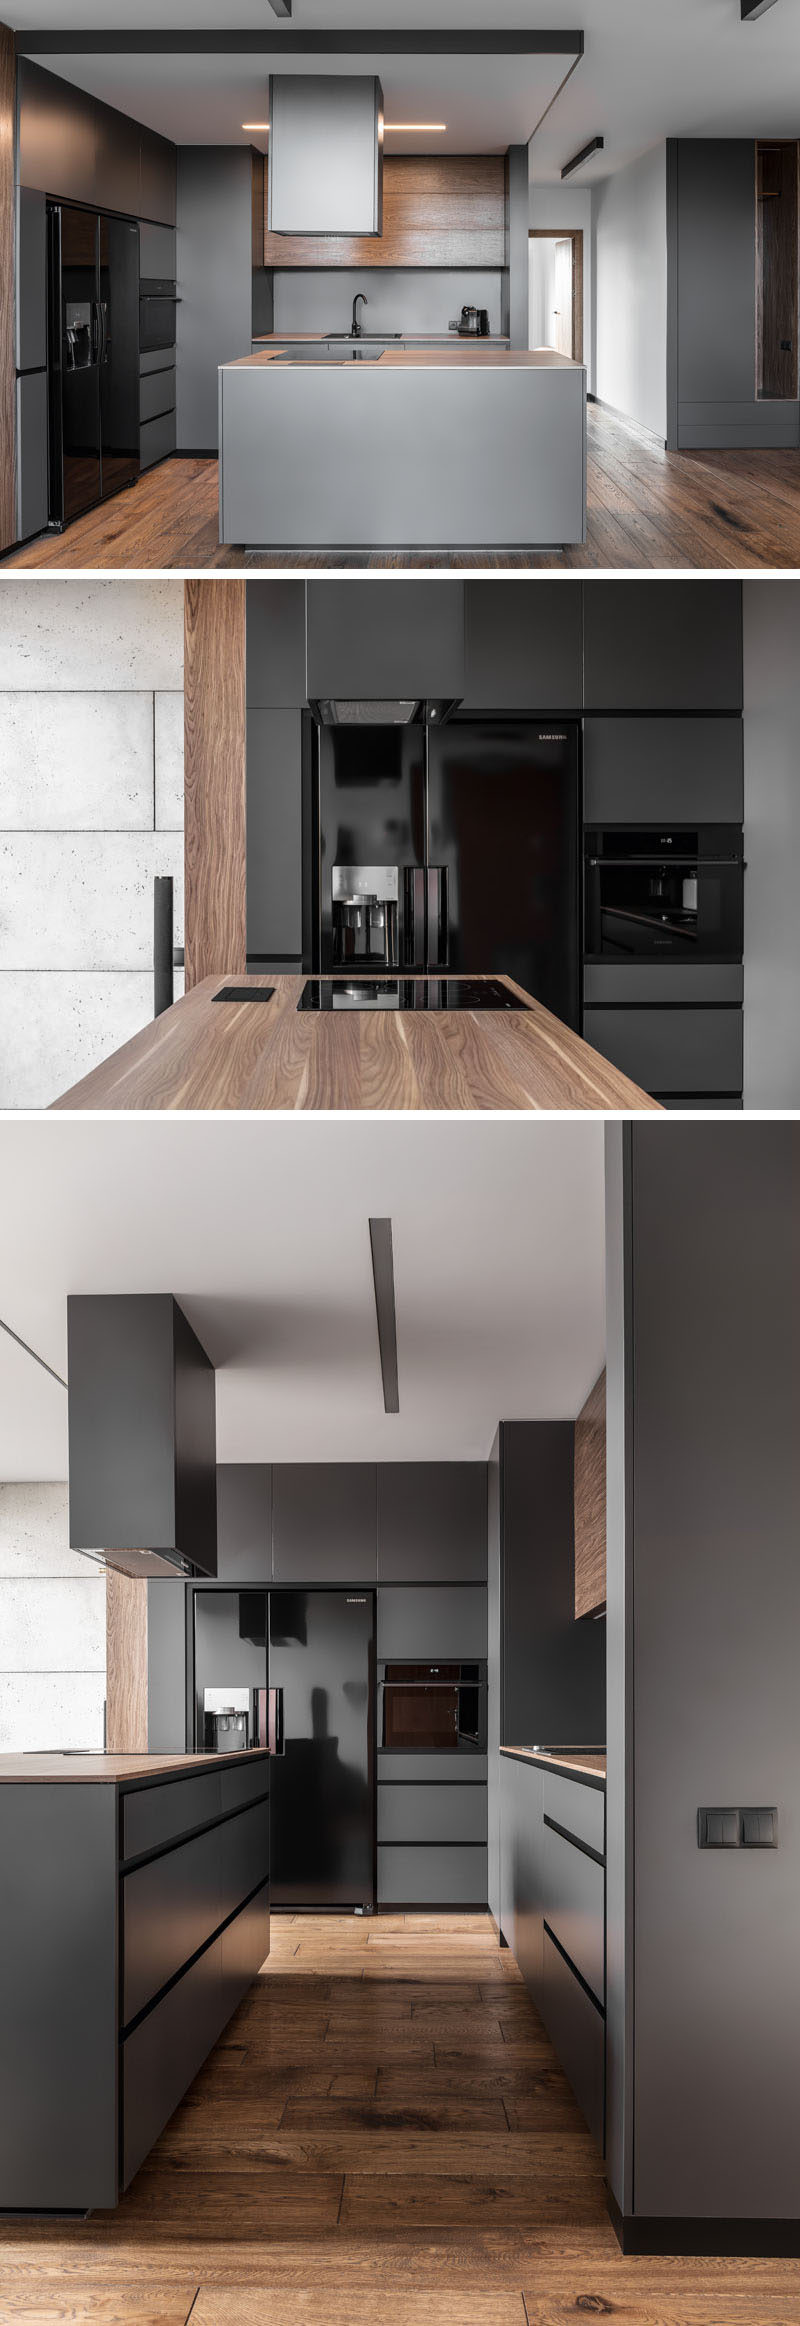 This Apartment Palette Full Greys Black And Wood